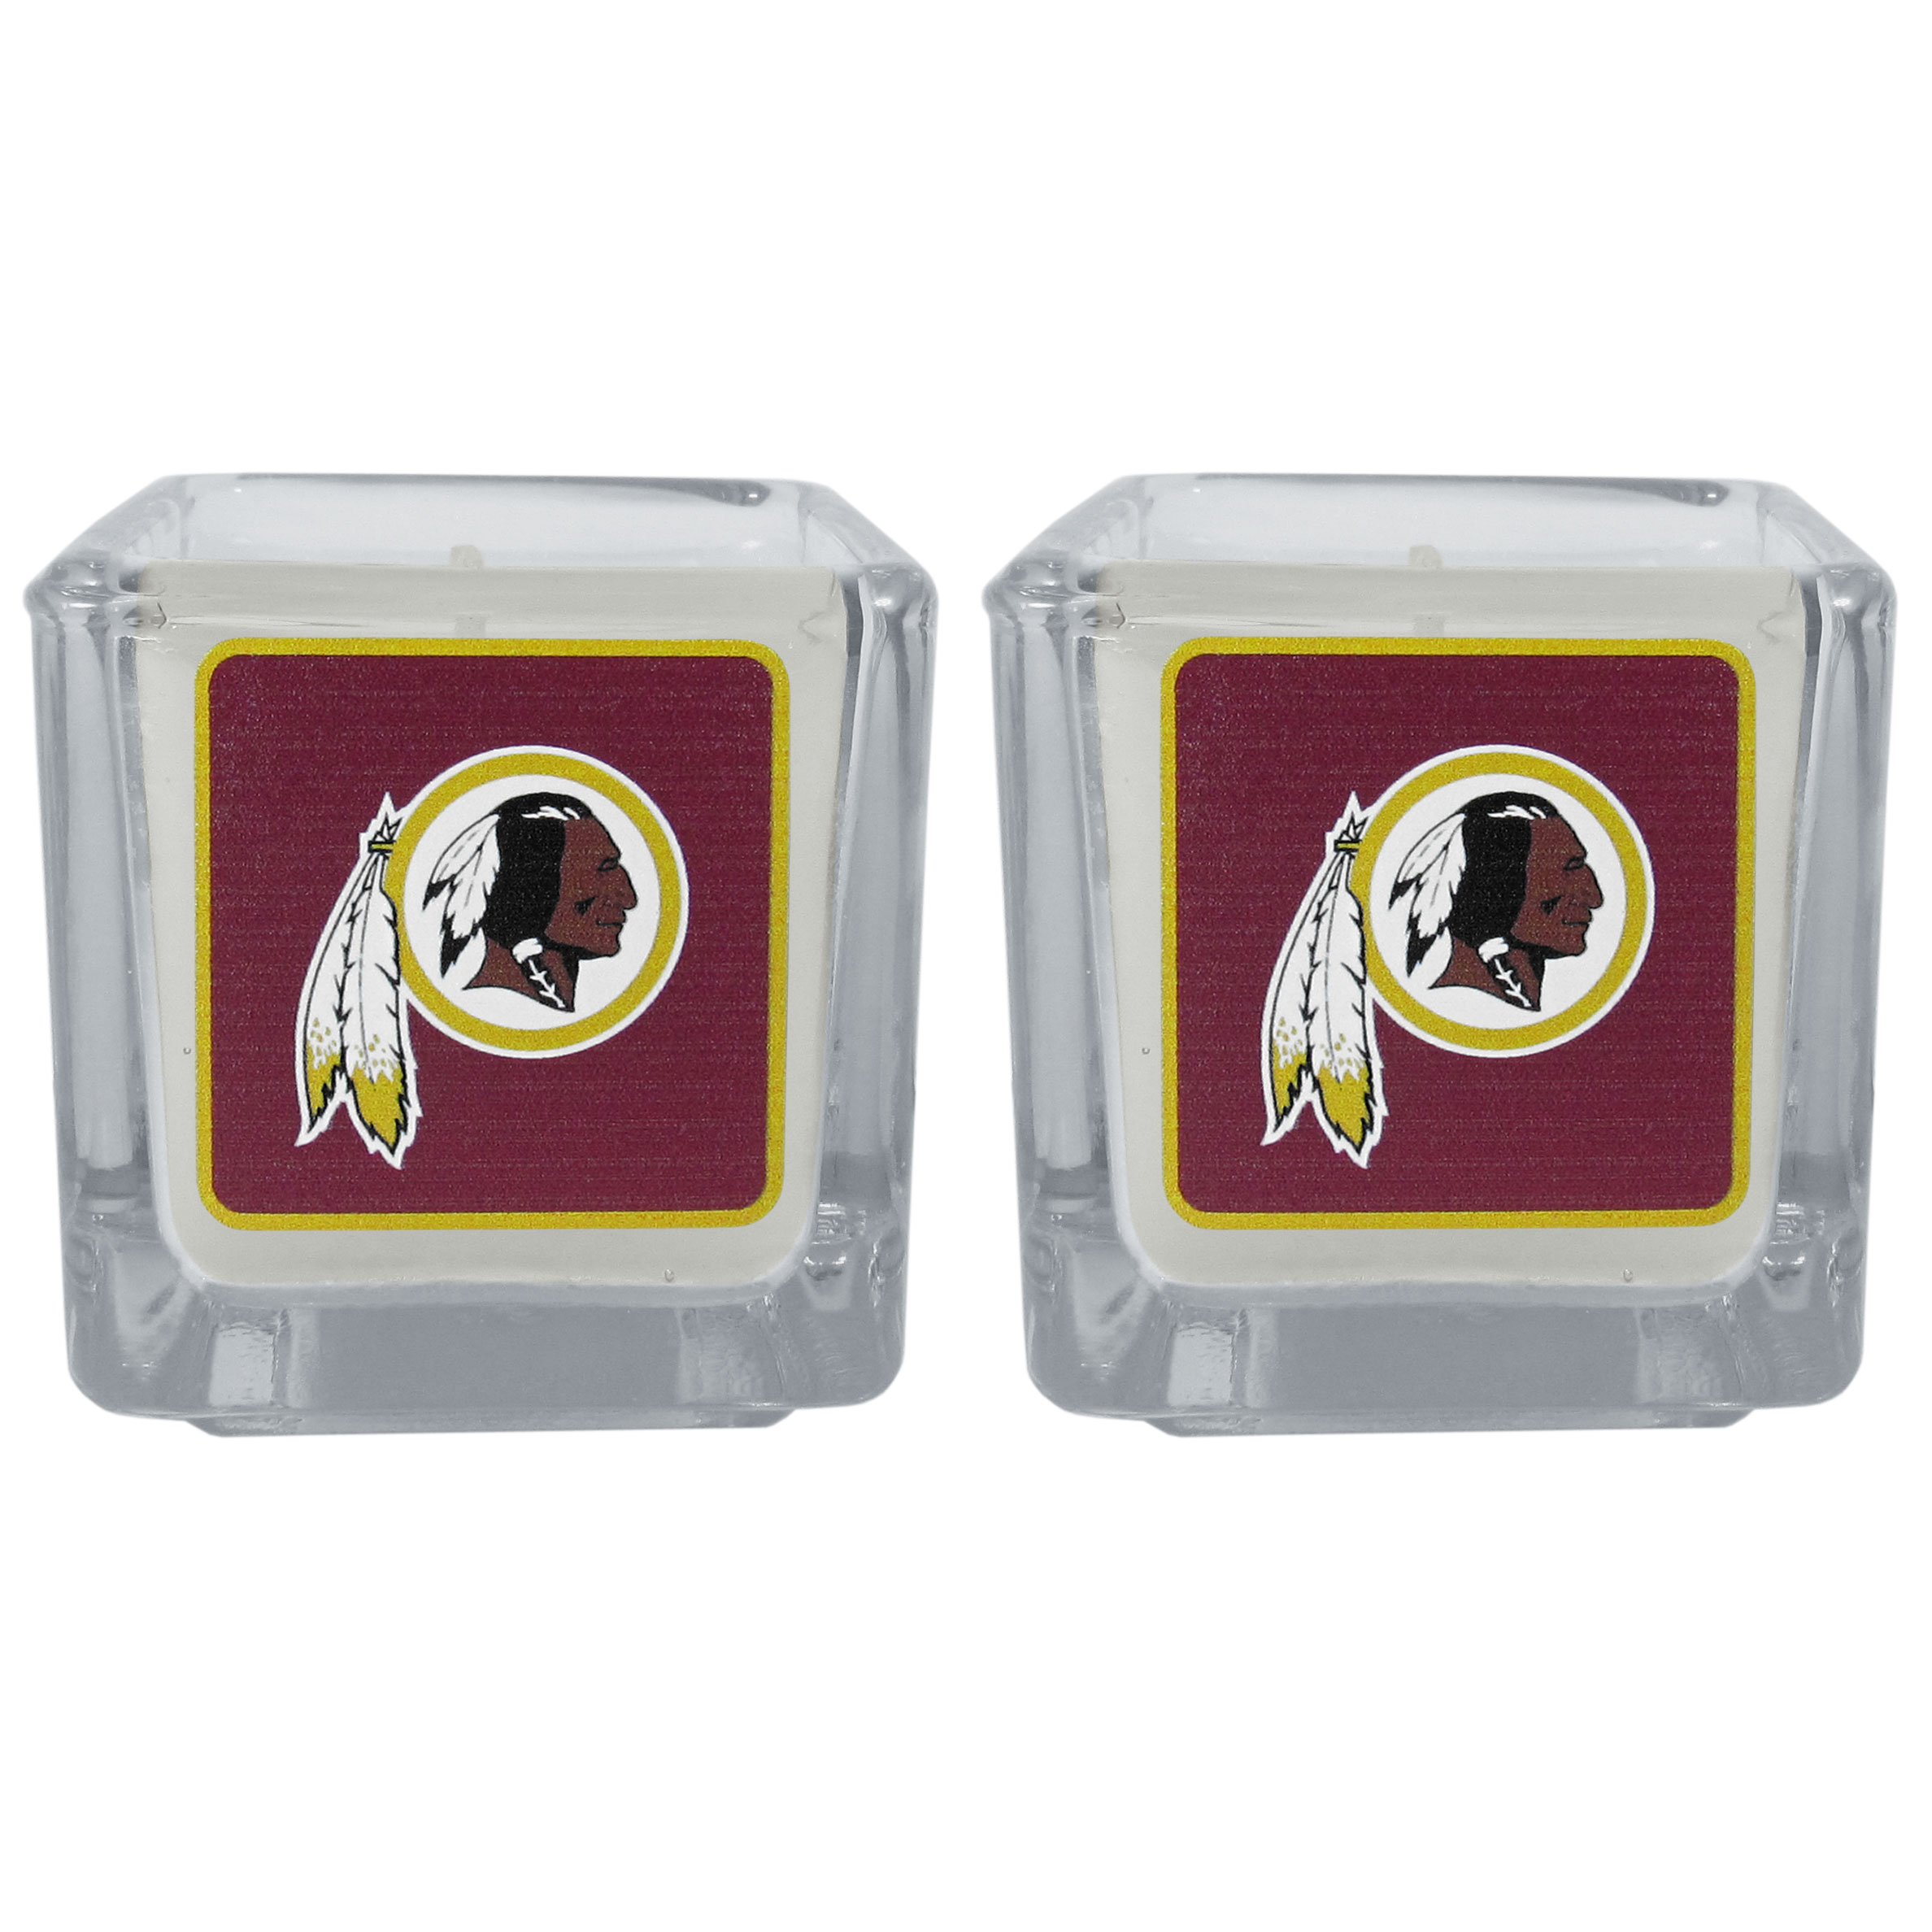 Washington Redskins Graphics Candle Set - Our candle set features 2 lightly vanilla scented candles with the Washington Redskins logo expertly printed on front. The candles are 2 inches tall in the votive style.